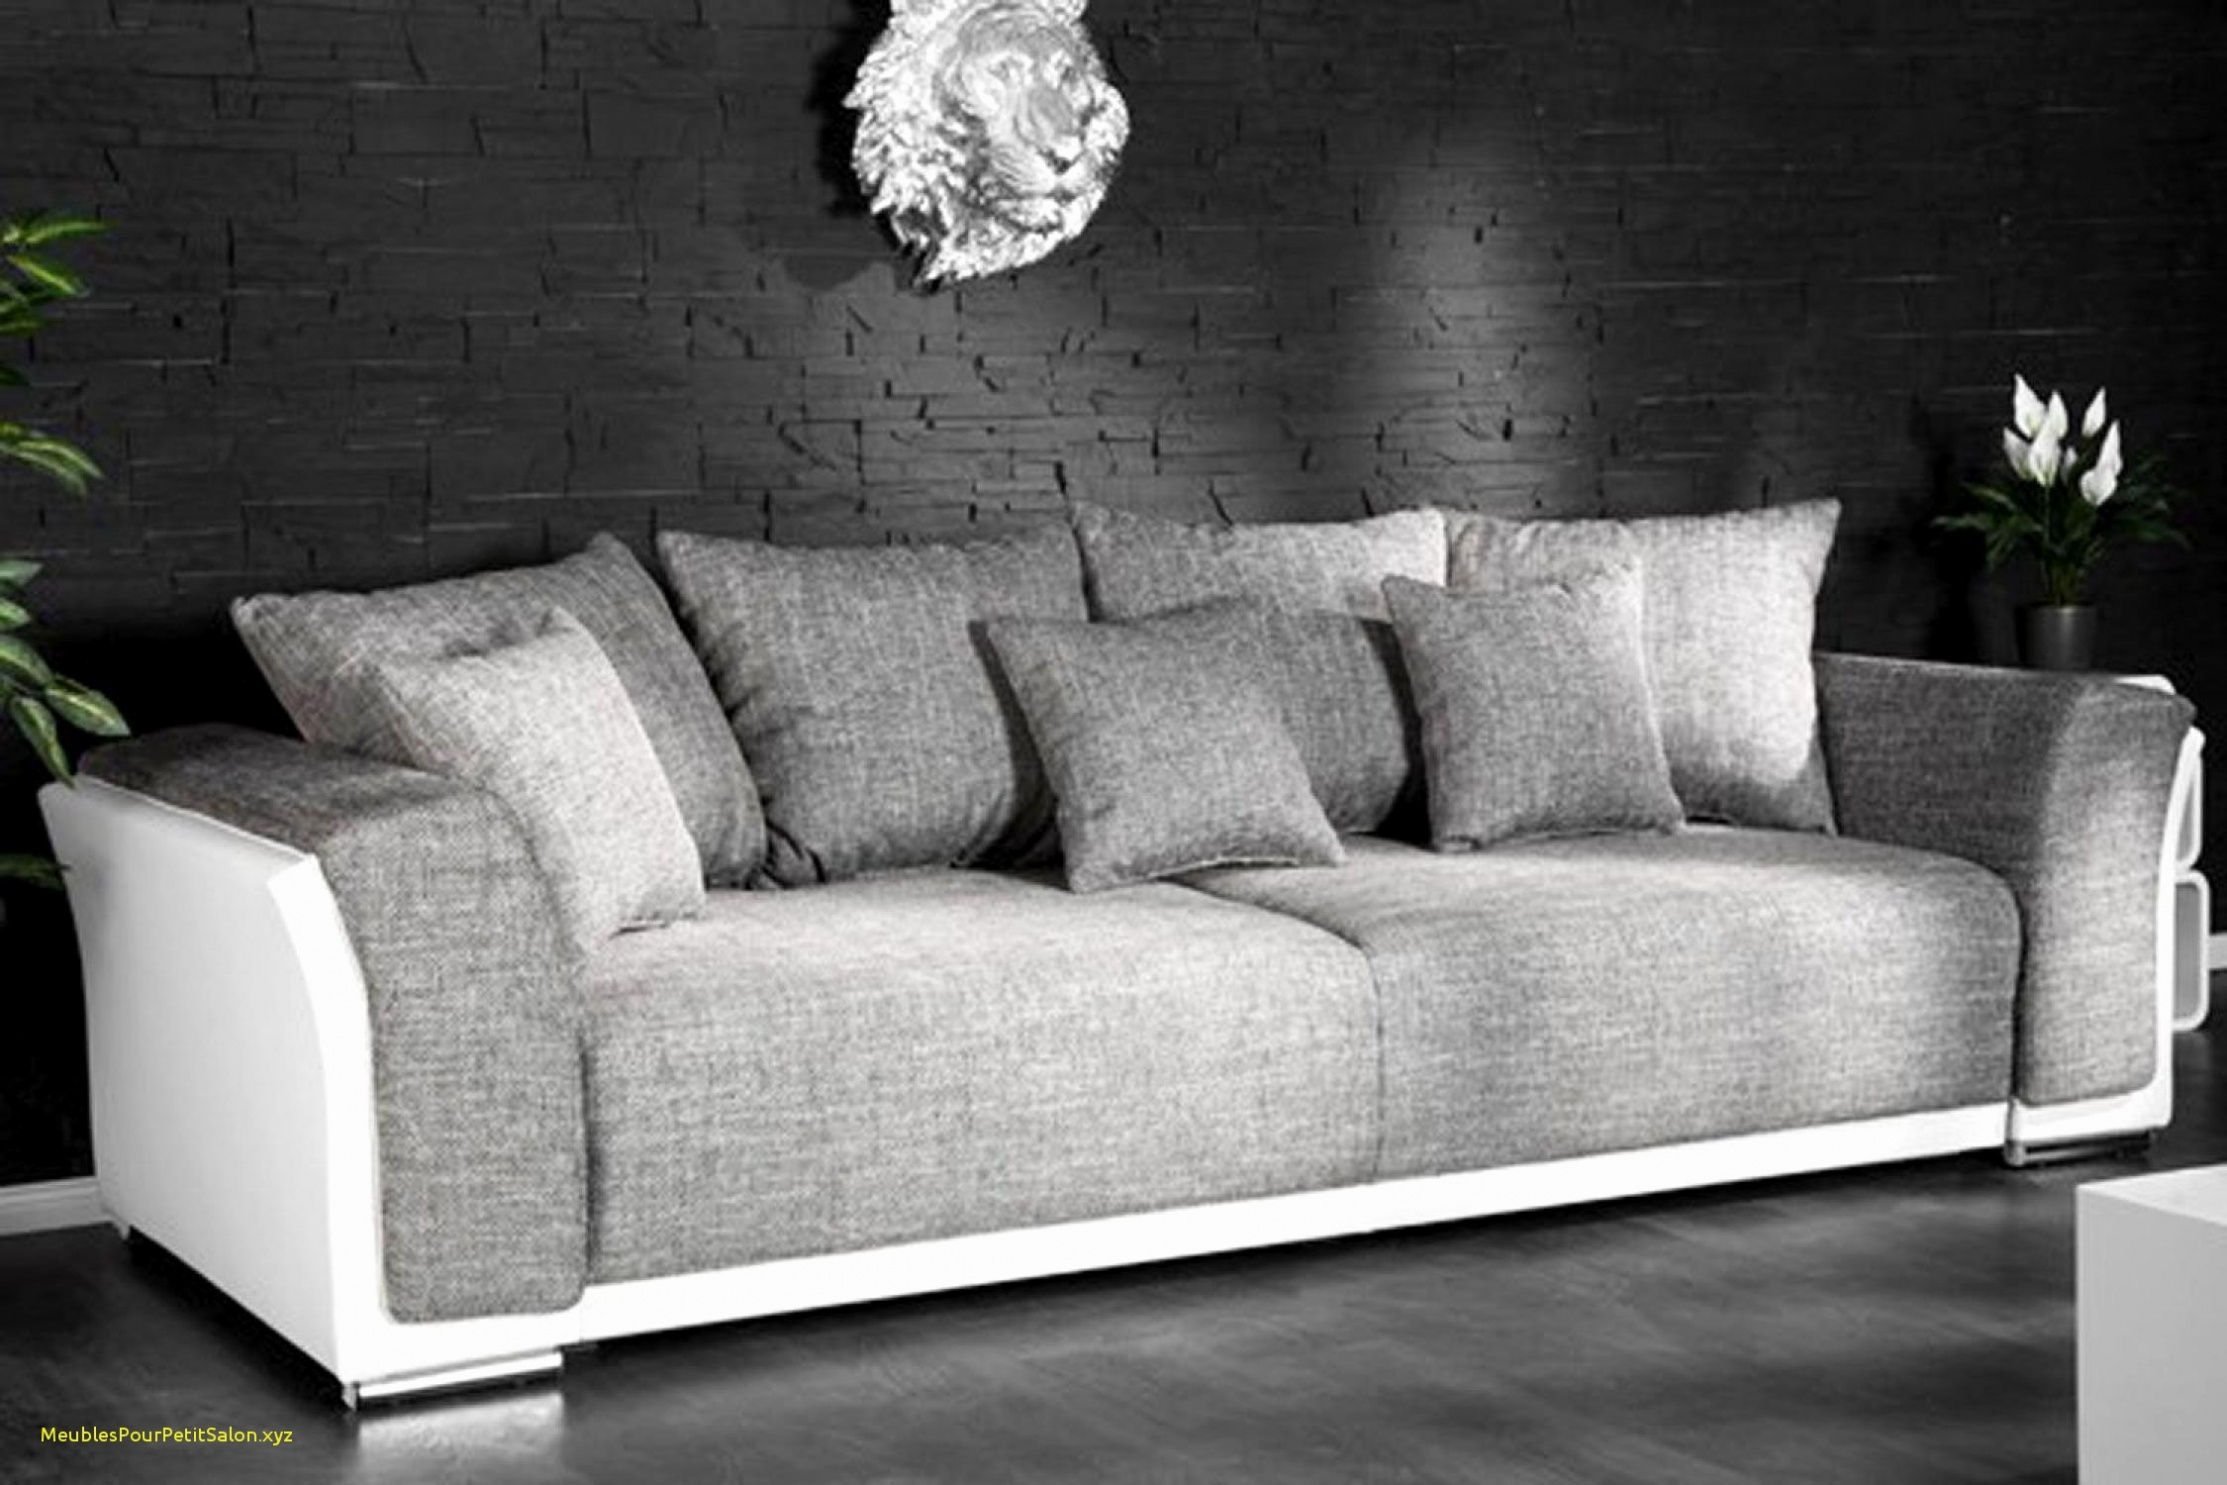 Canapé Jimi La Redoute Luxe Images Maha S Couch 7 Places Home Mahagranda